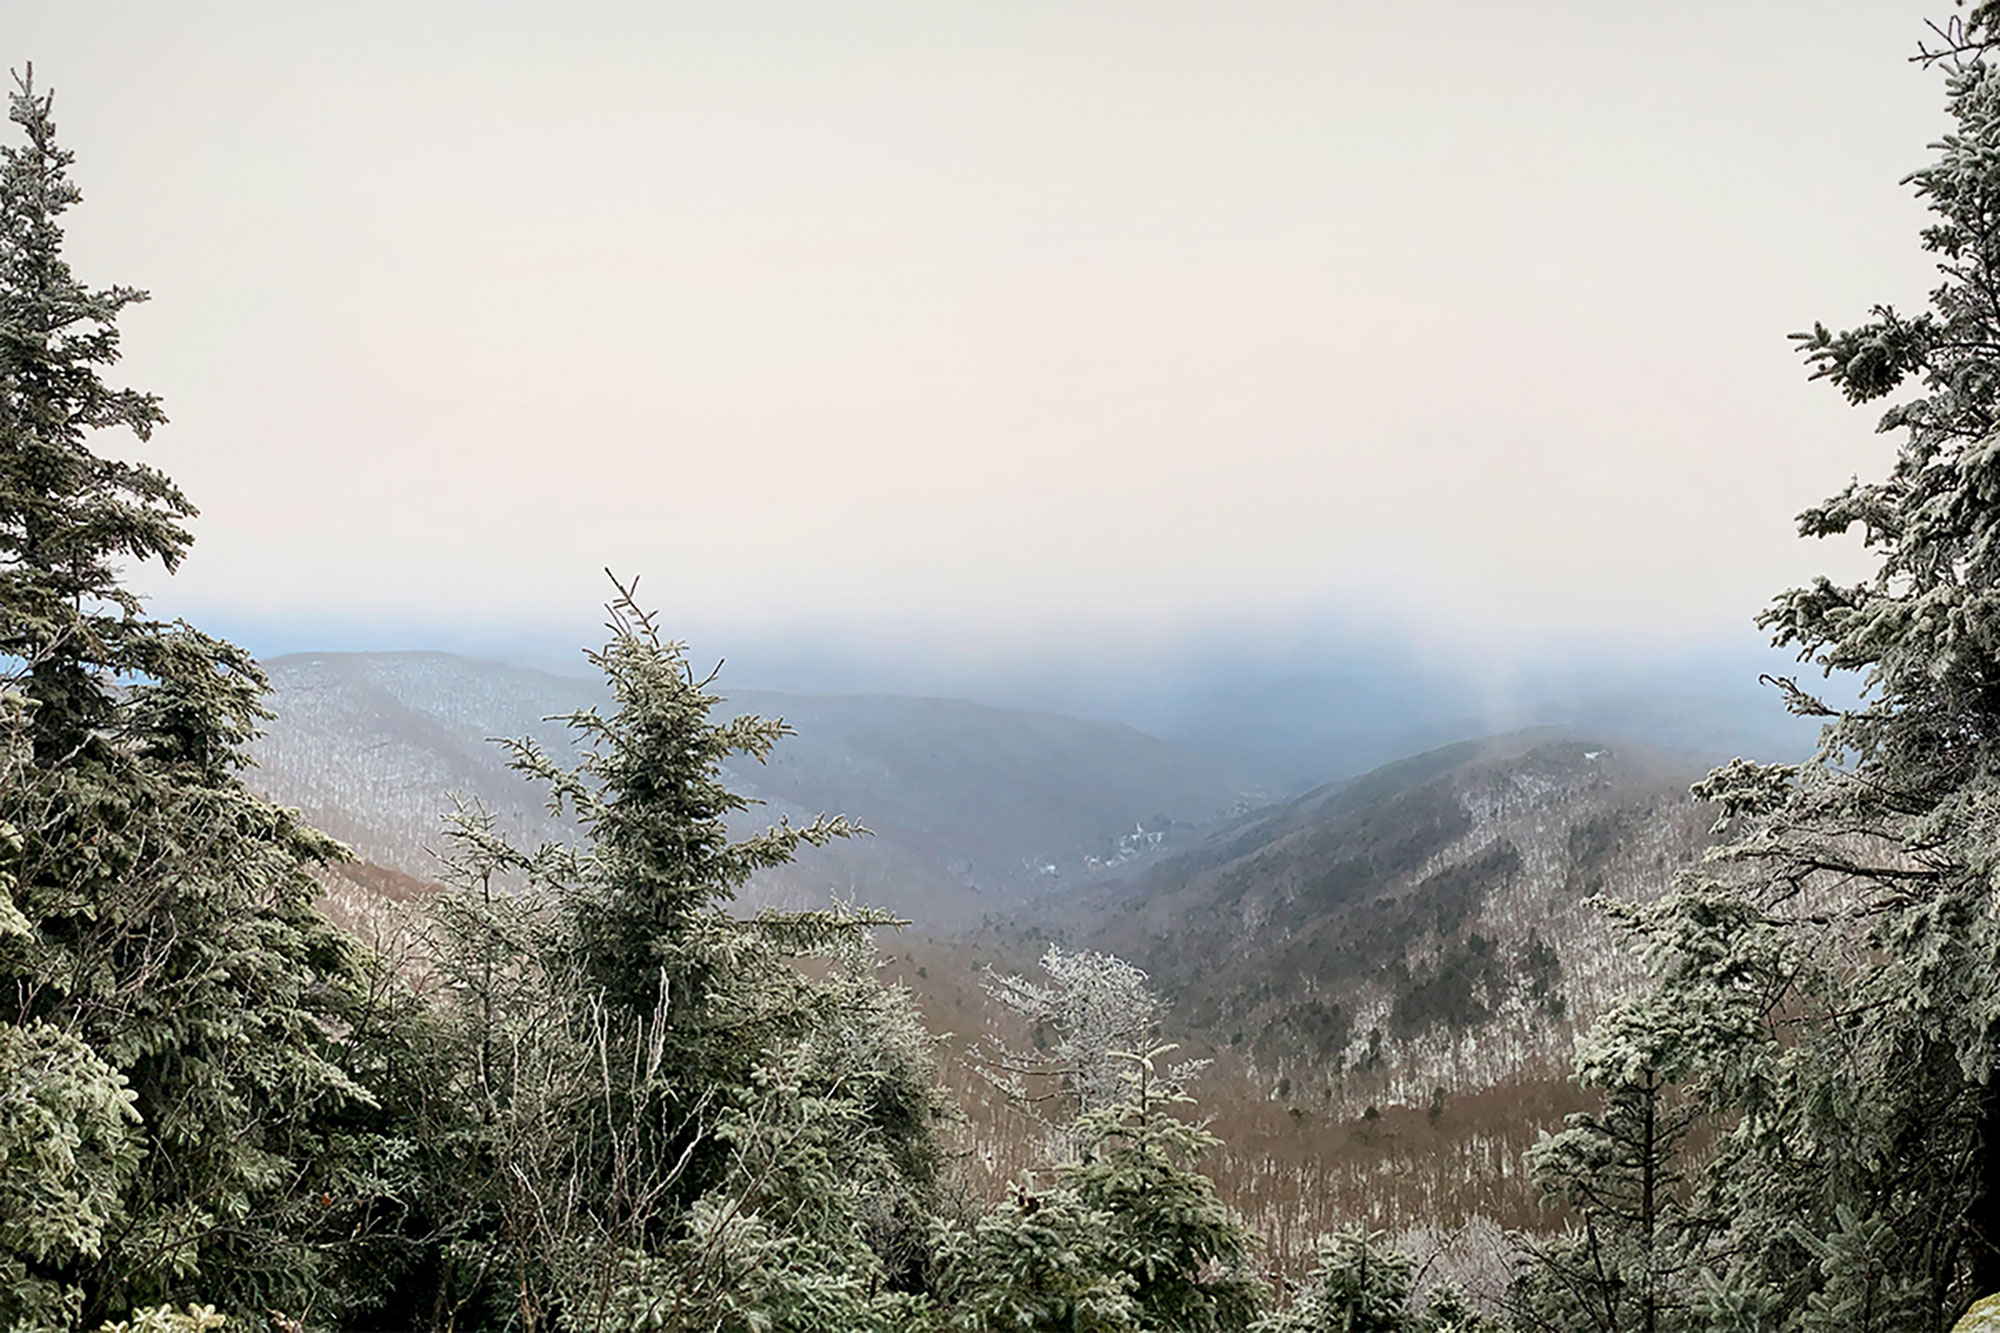 The viewpoint just north of Panther's summit, a little bit obscured by low clouds and flurries. | Credit: John Lepak